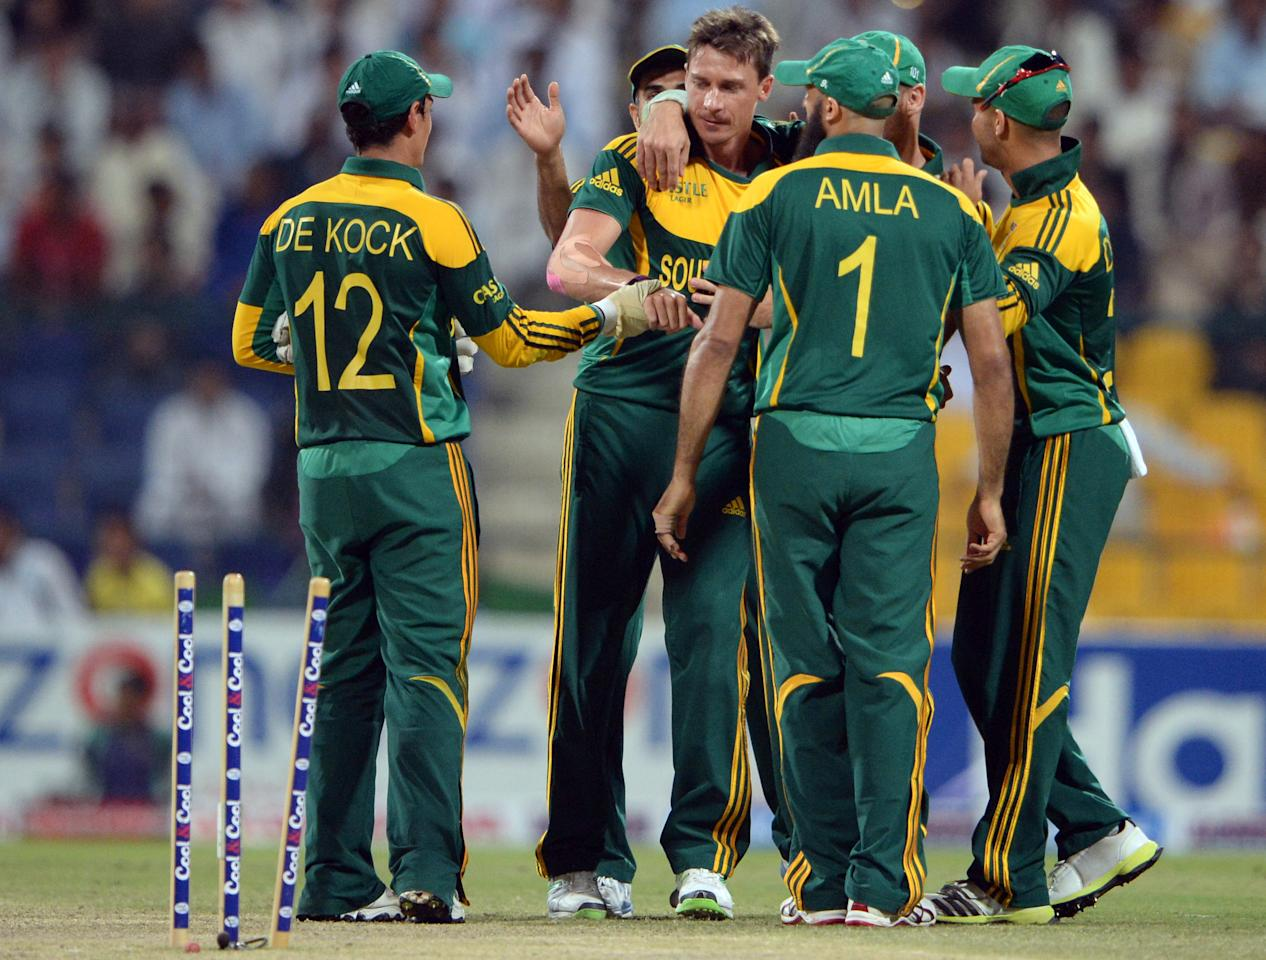 South African bowler Dale Steyn (C) celebrates with teammates after clean bowled of Pakistani cricketer Saeed Ajmal (unseen) during the fourth day-night international in Sheikh Zayed Cricket Stadium in Abu Dhabi on November 8, 2013. South Africa beat Pakistan by 28 runs, to take an unbeatable 3-1 lead in the five-match series. AFP PHOTO/ ASIF HASSAN        (Photo credit should read ASIF HASSAN/AFP/Getty Images)